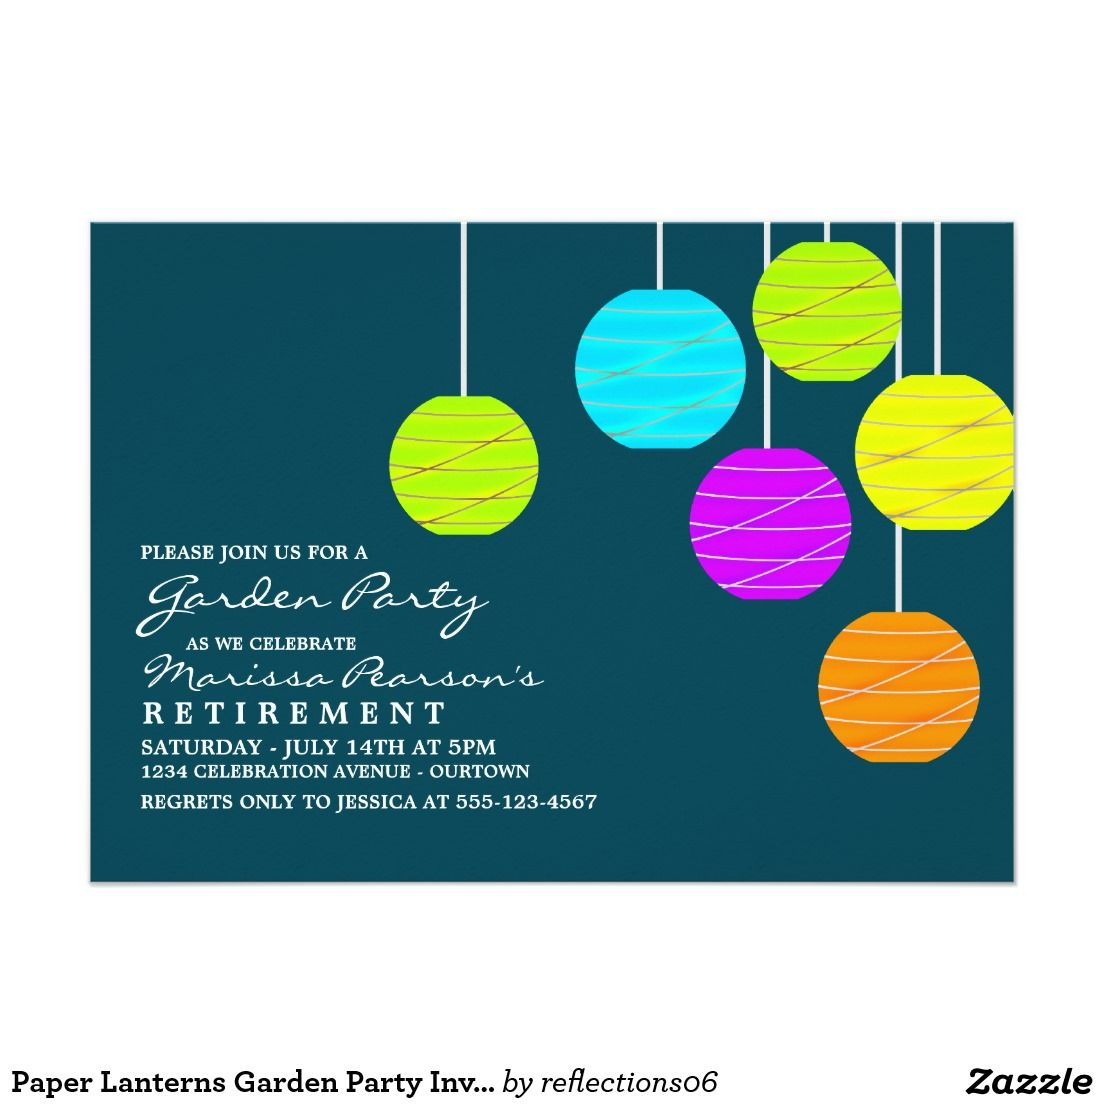 paper lanterns garden party invitations invitations pinterest